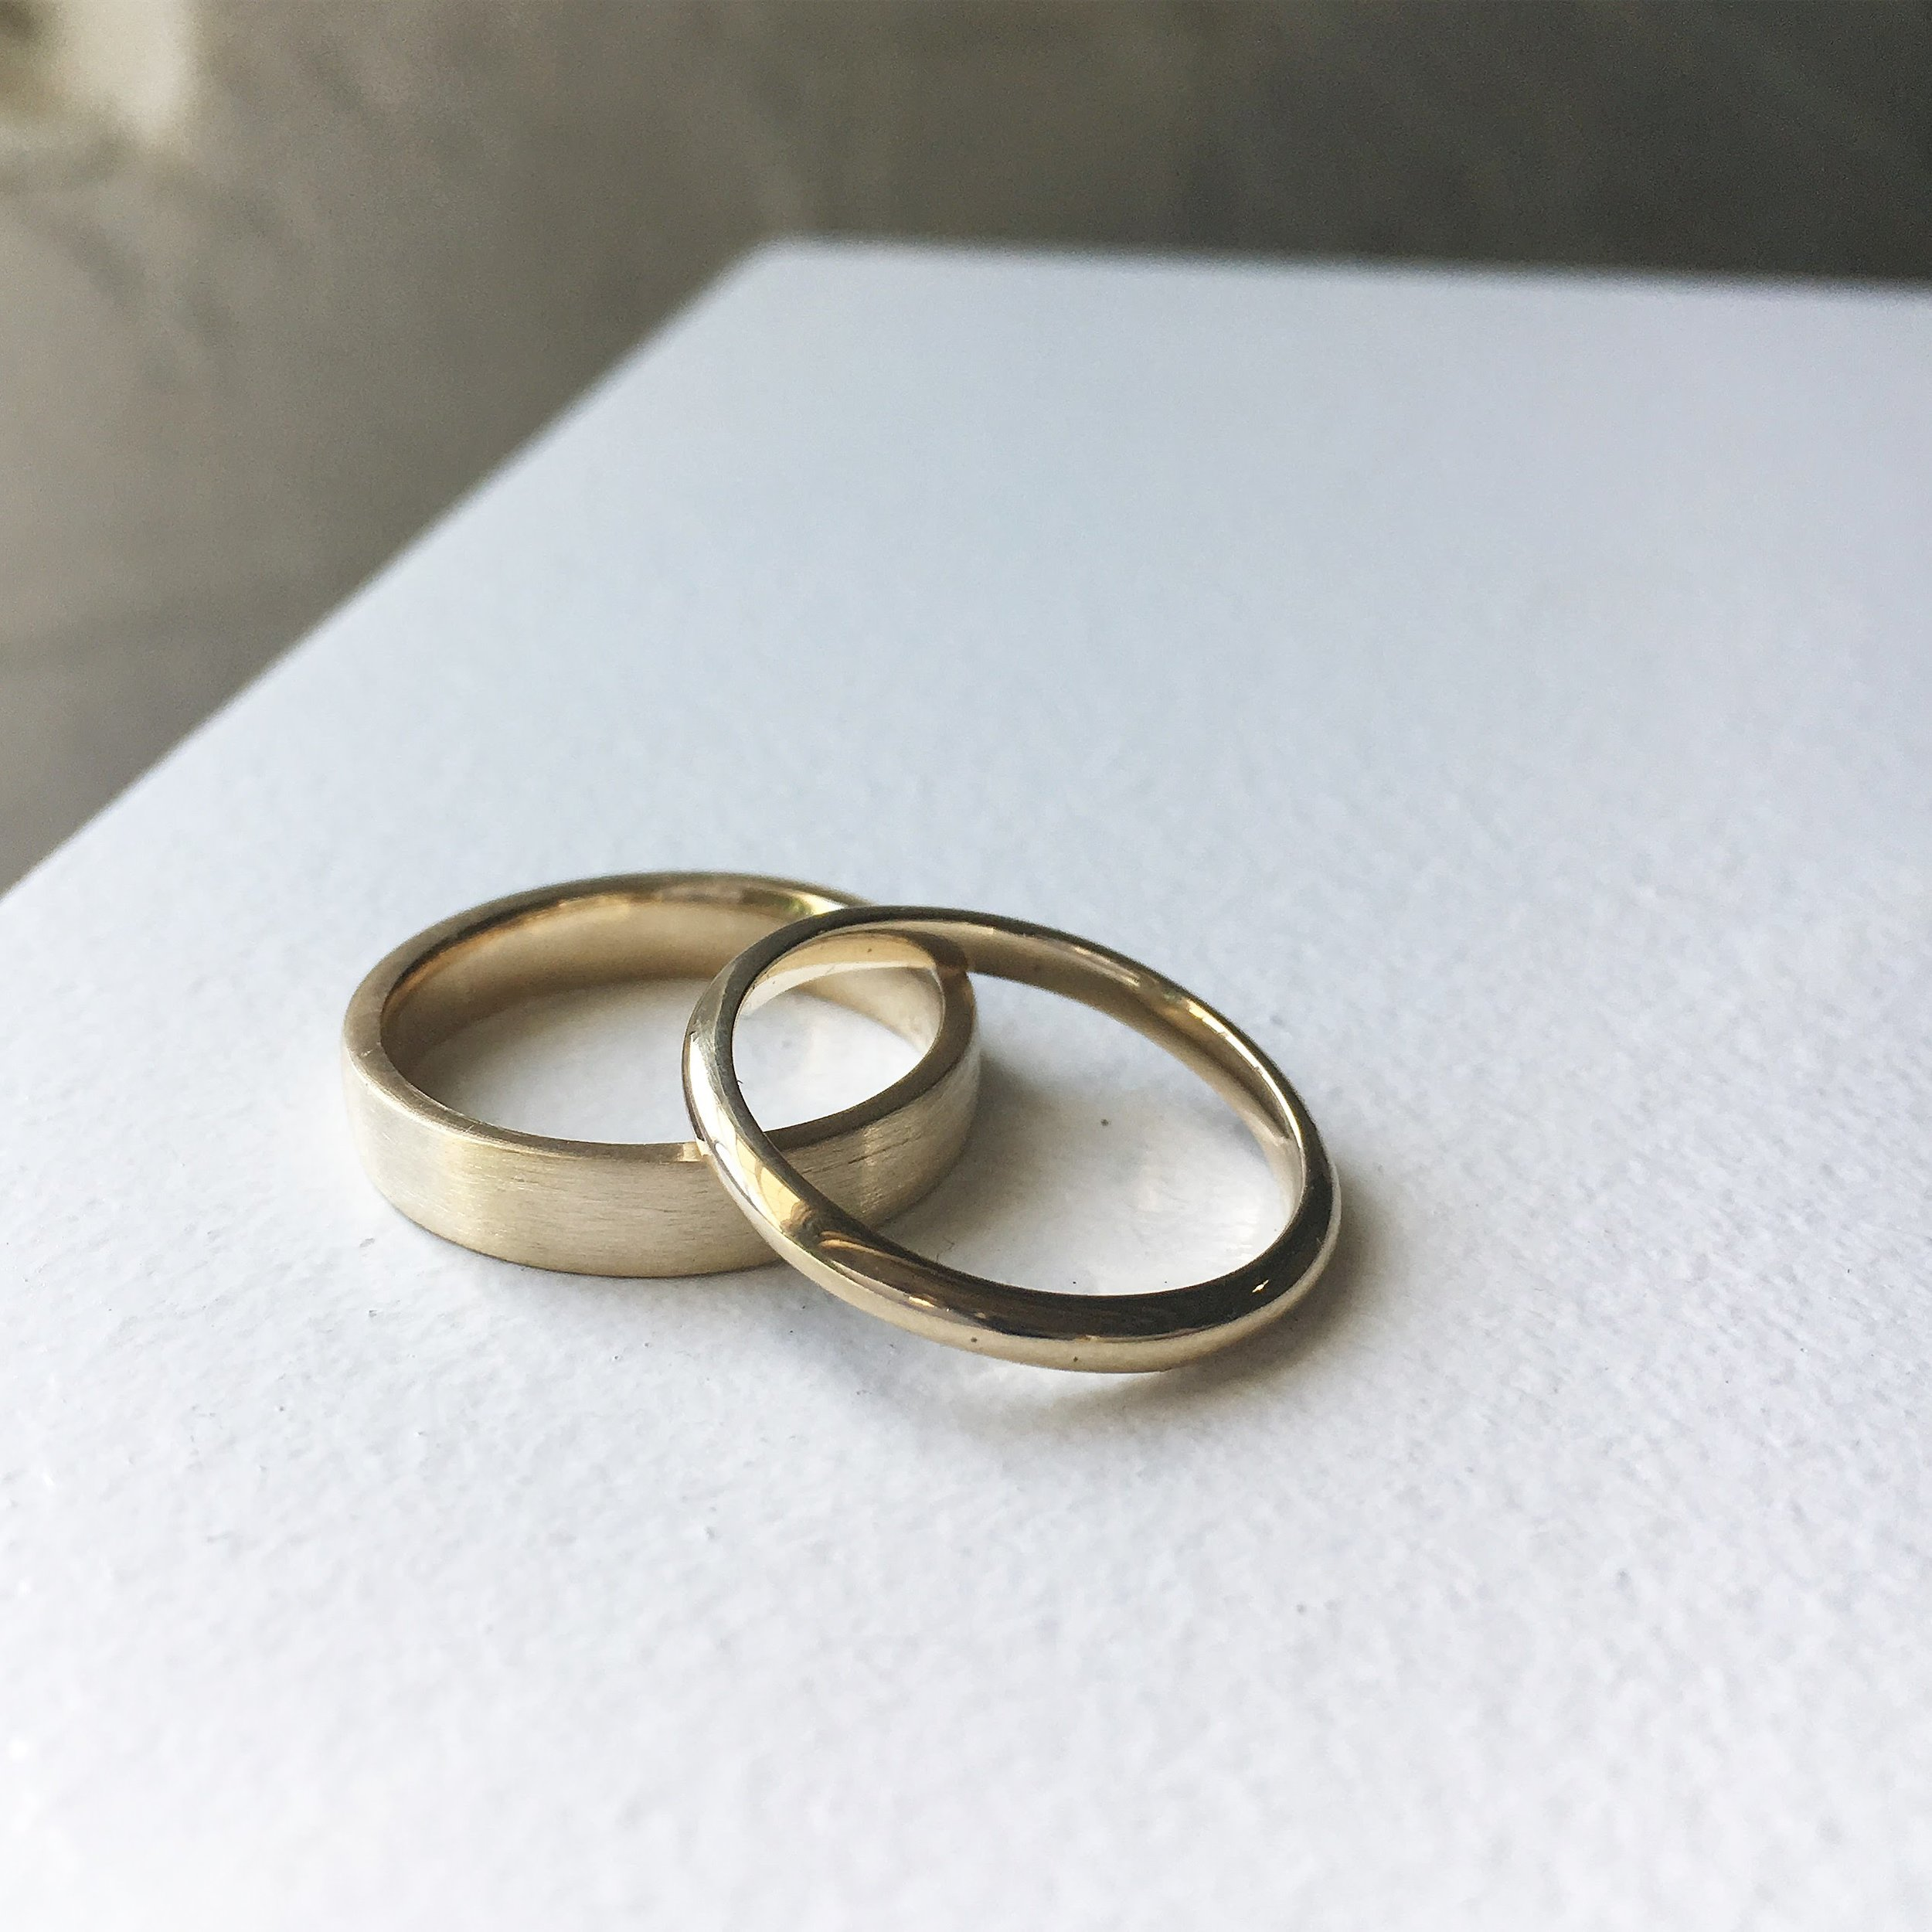 ROBYN + LAURA - 3mm flat band and thin round band, 14k yellow gold